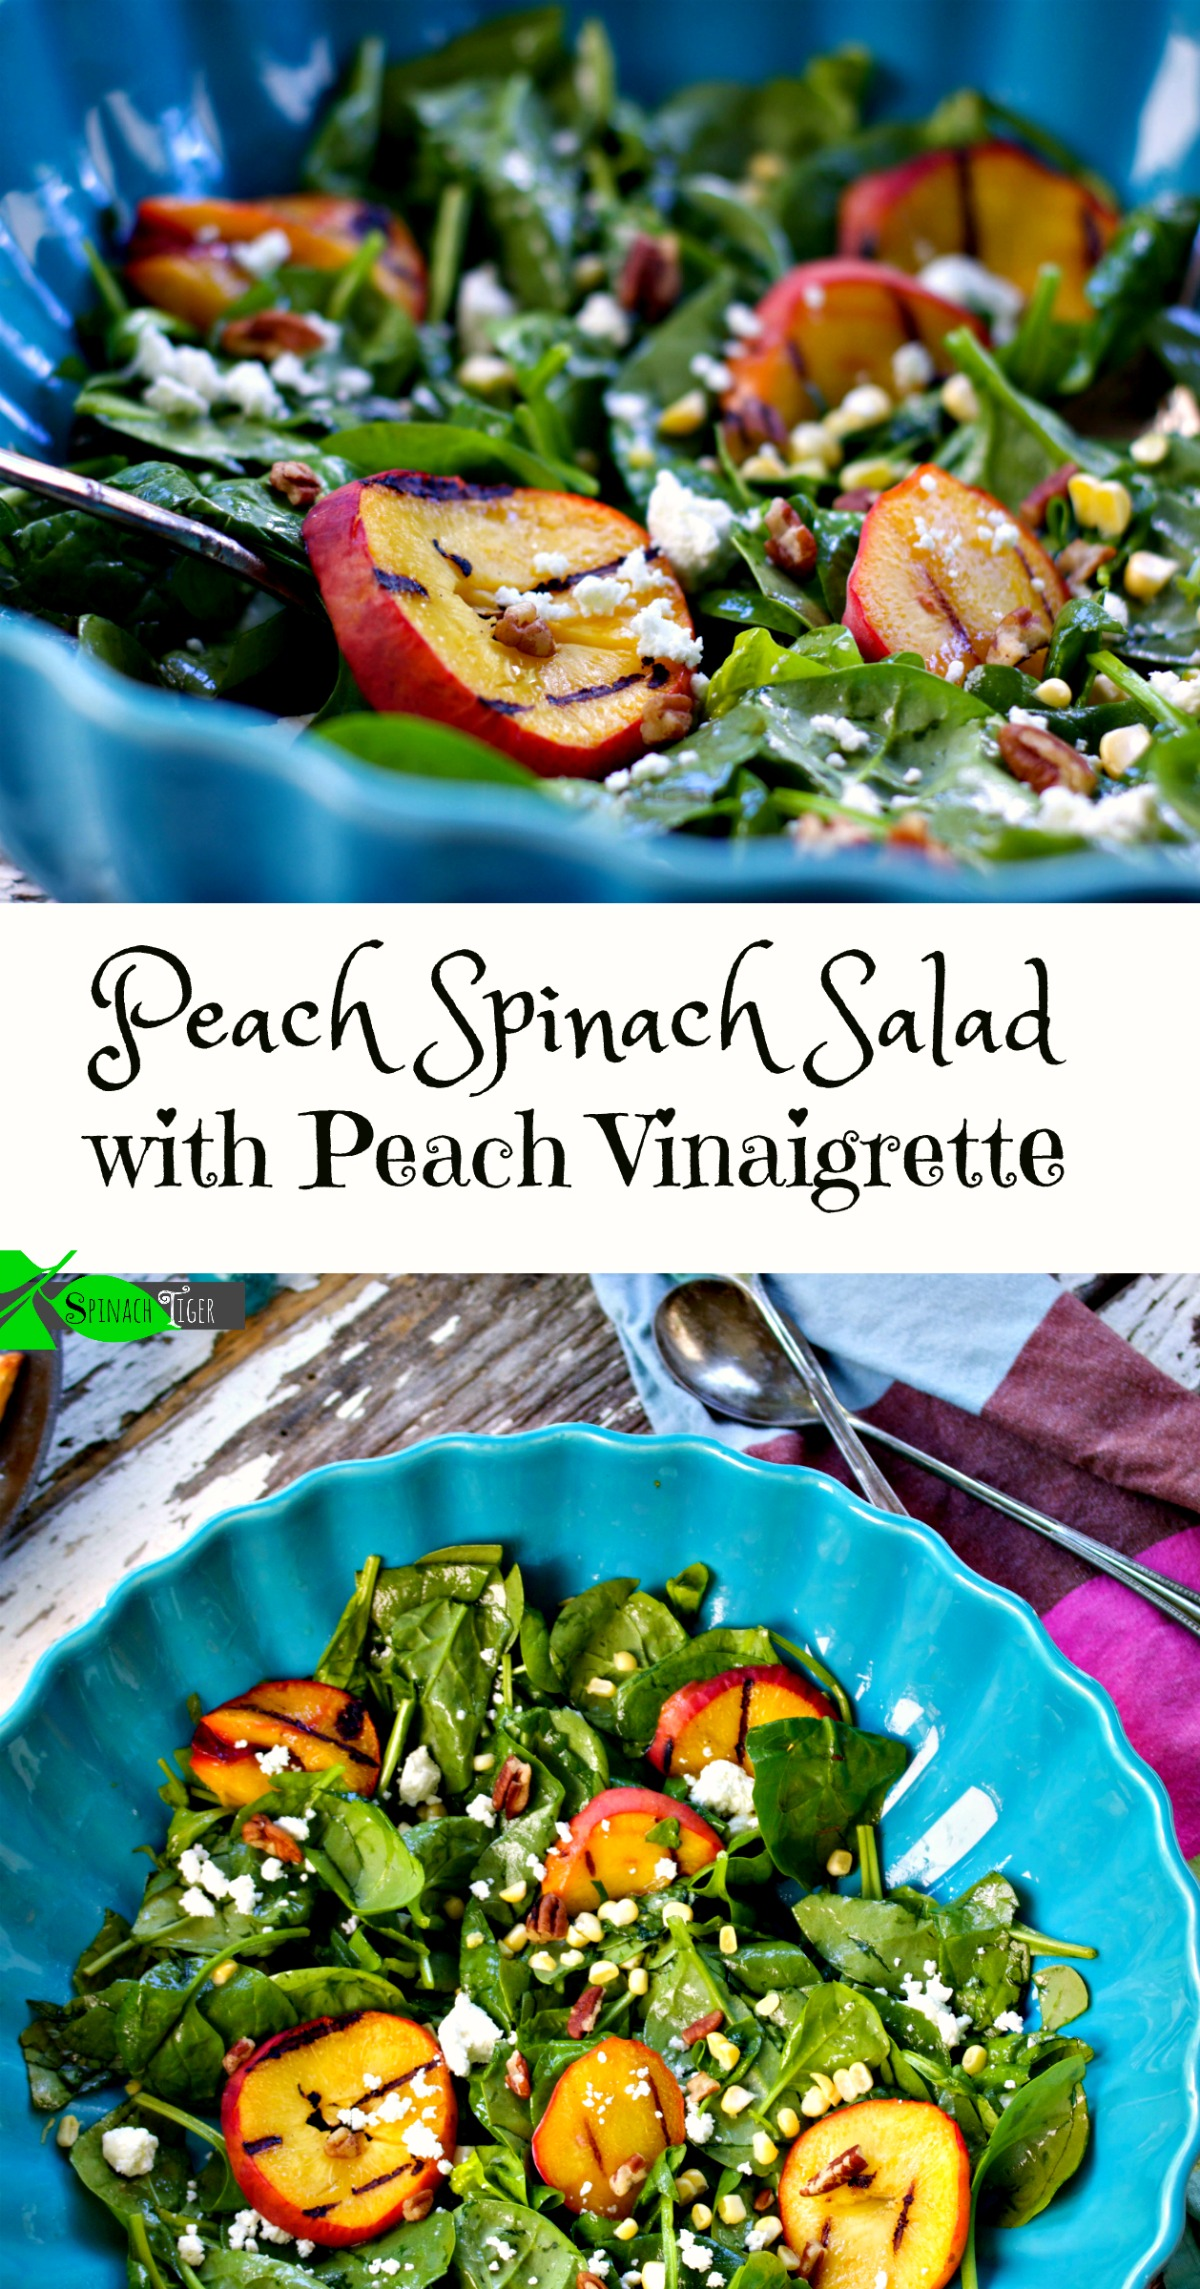 Peach Spinach Salad with Peach Vinaigrette from Spinach Tiger